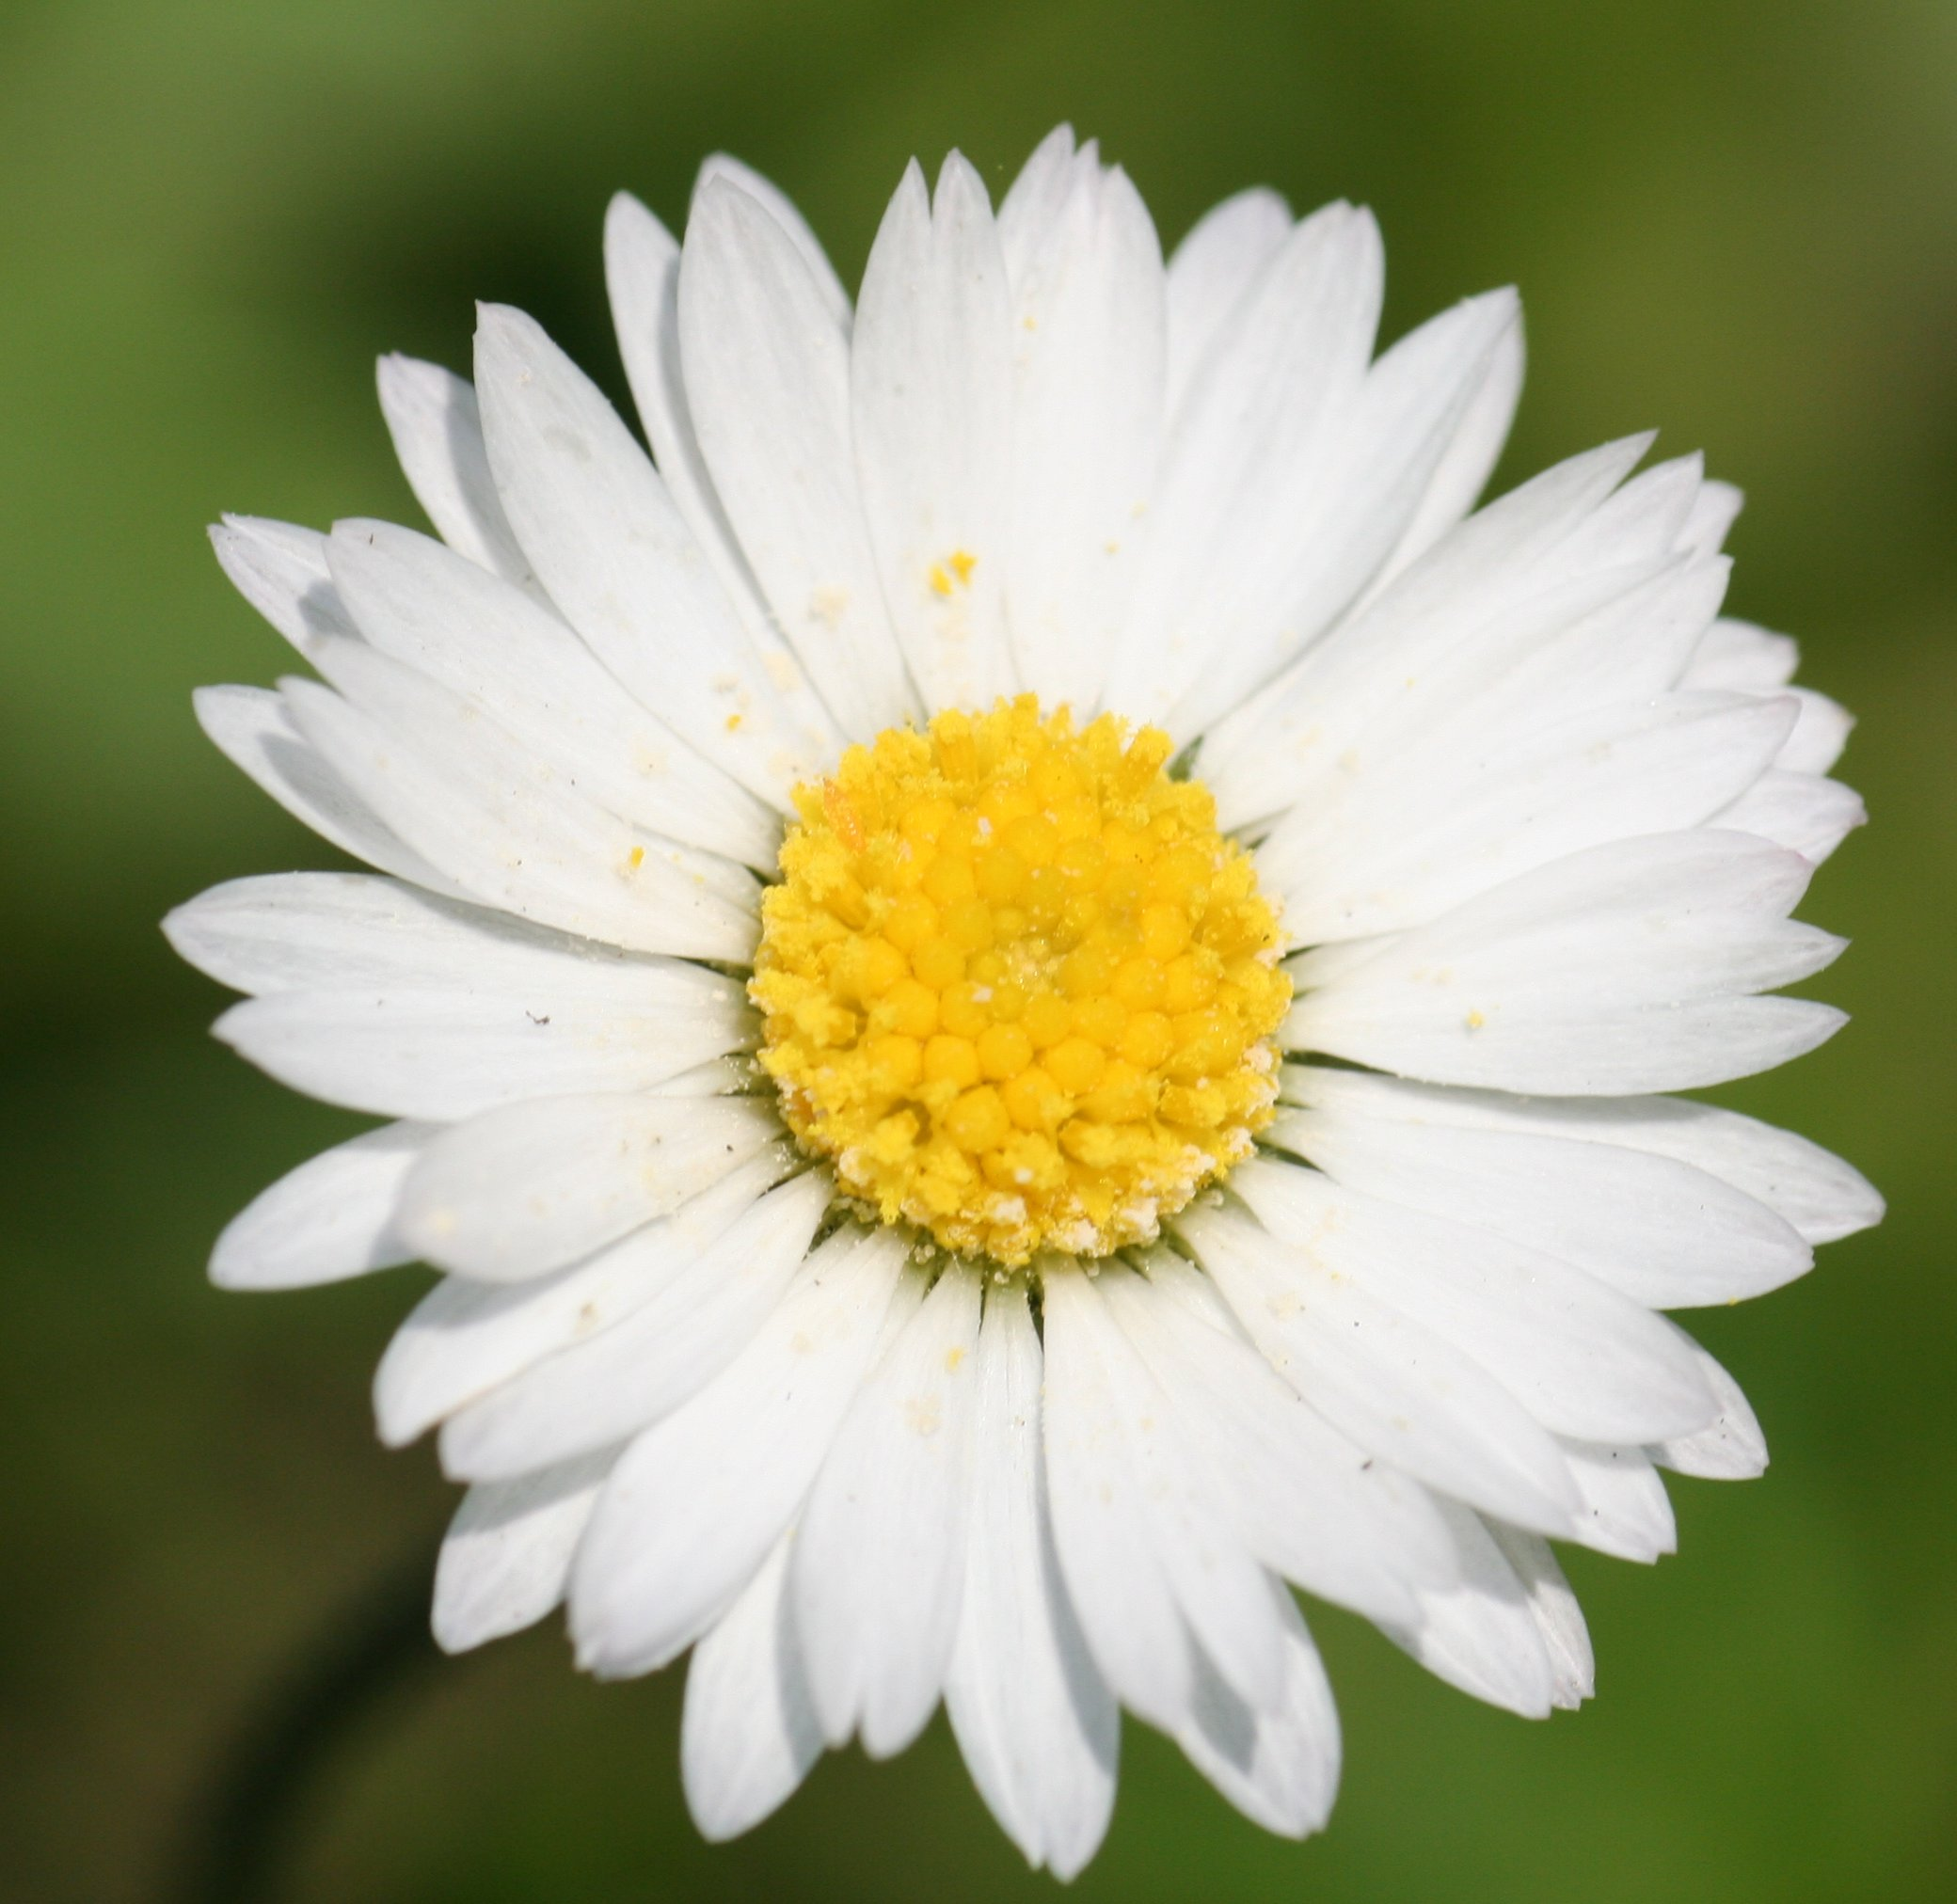 File:English Daisy (Bellis Perennis).jpg - Wikipedia